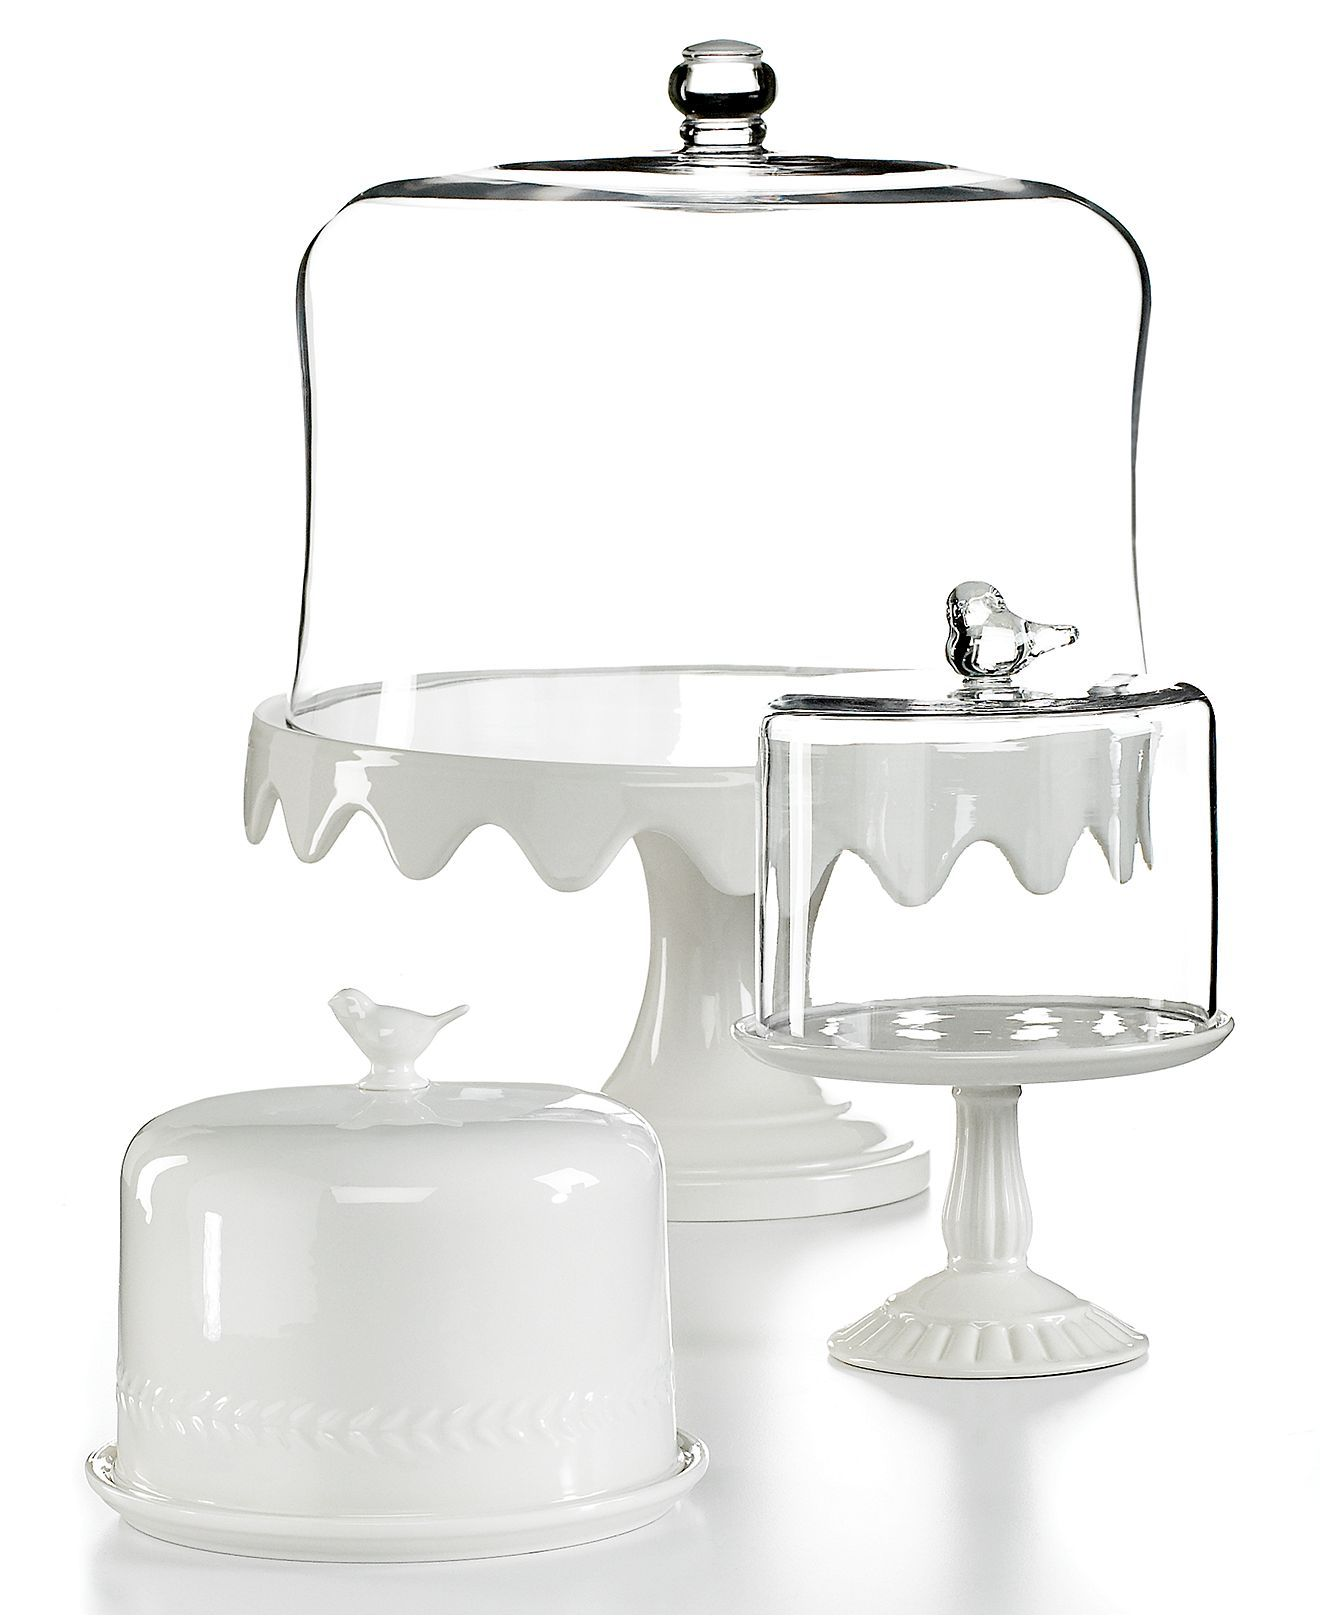 Beautiful cake stand on pinterest cake stands cake for Beautiful cake stands